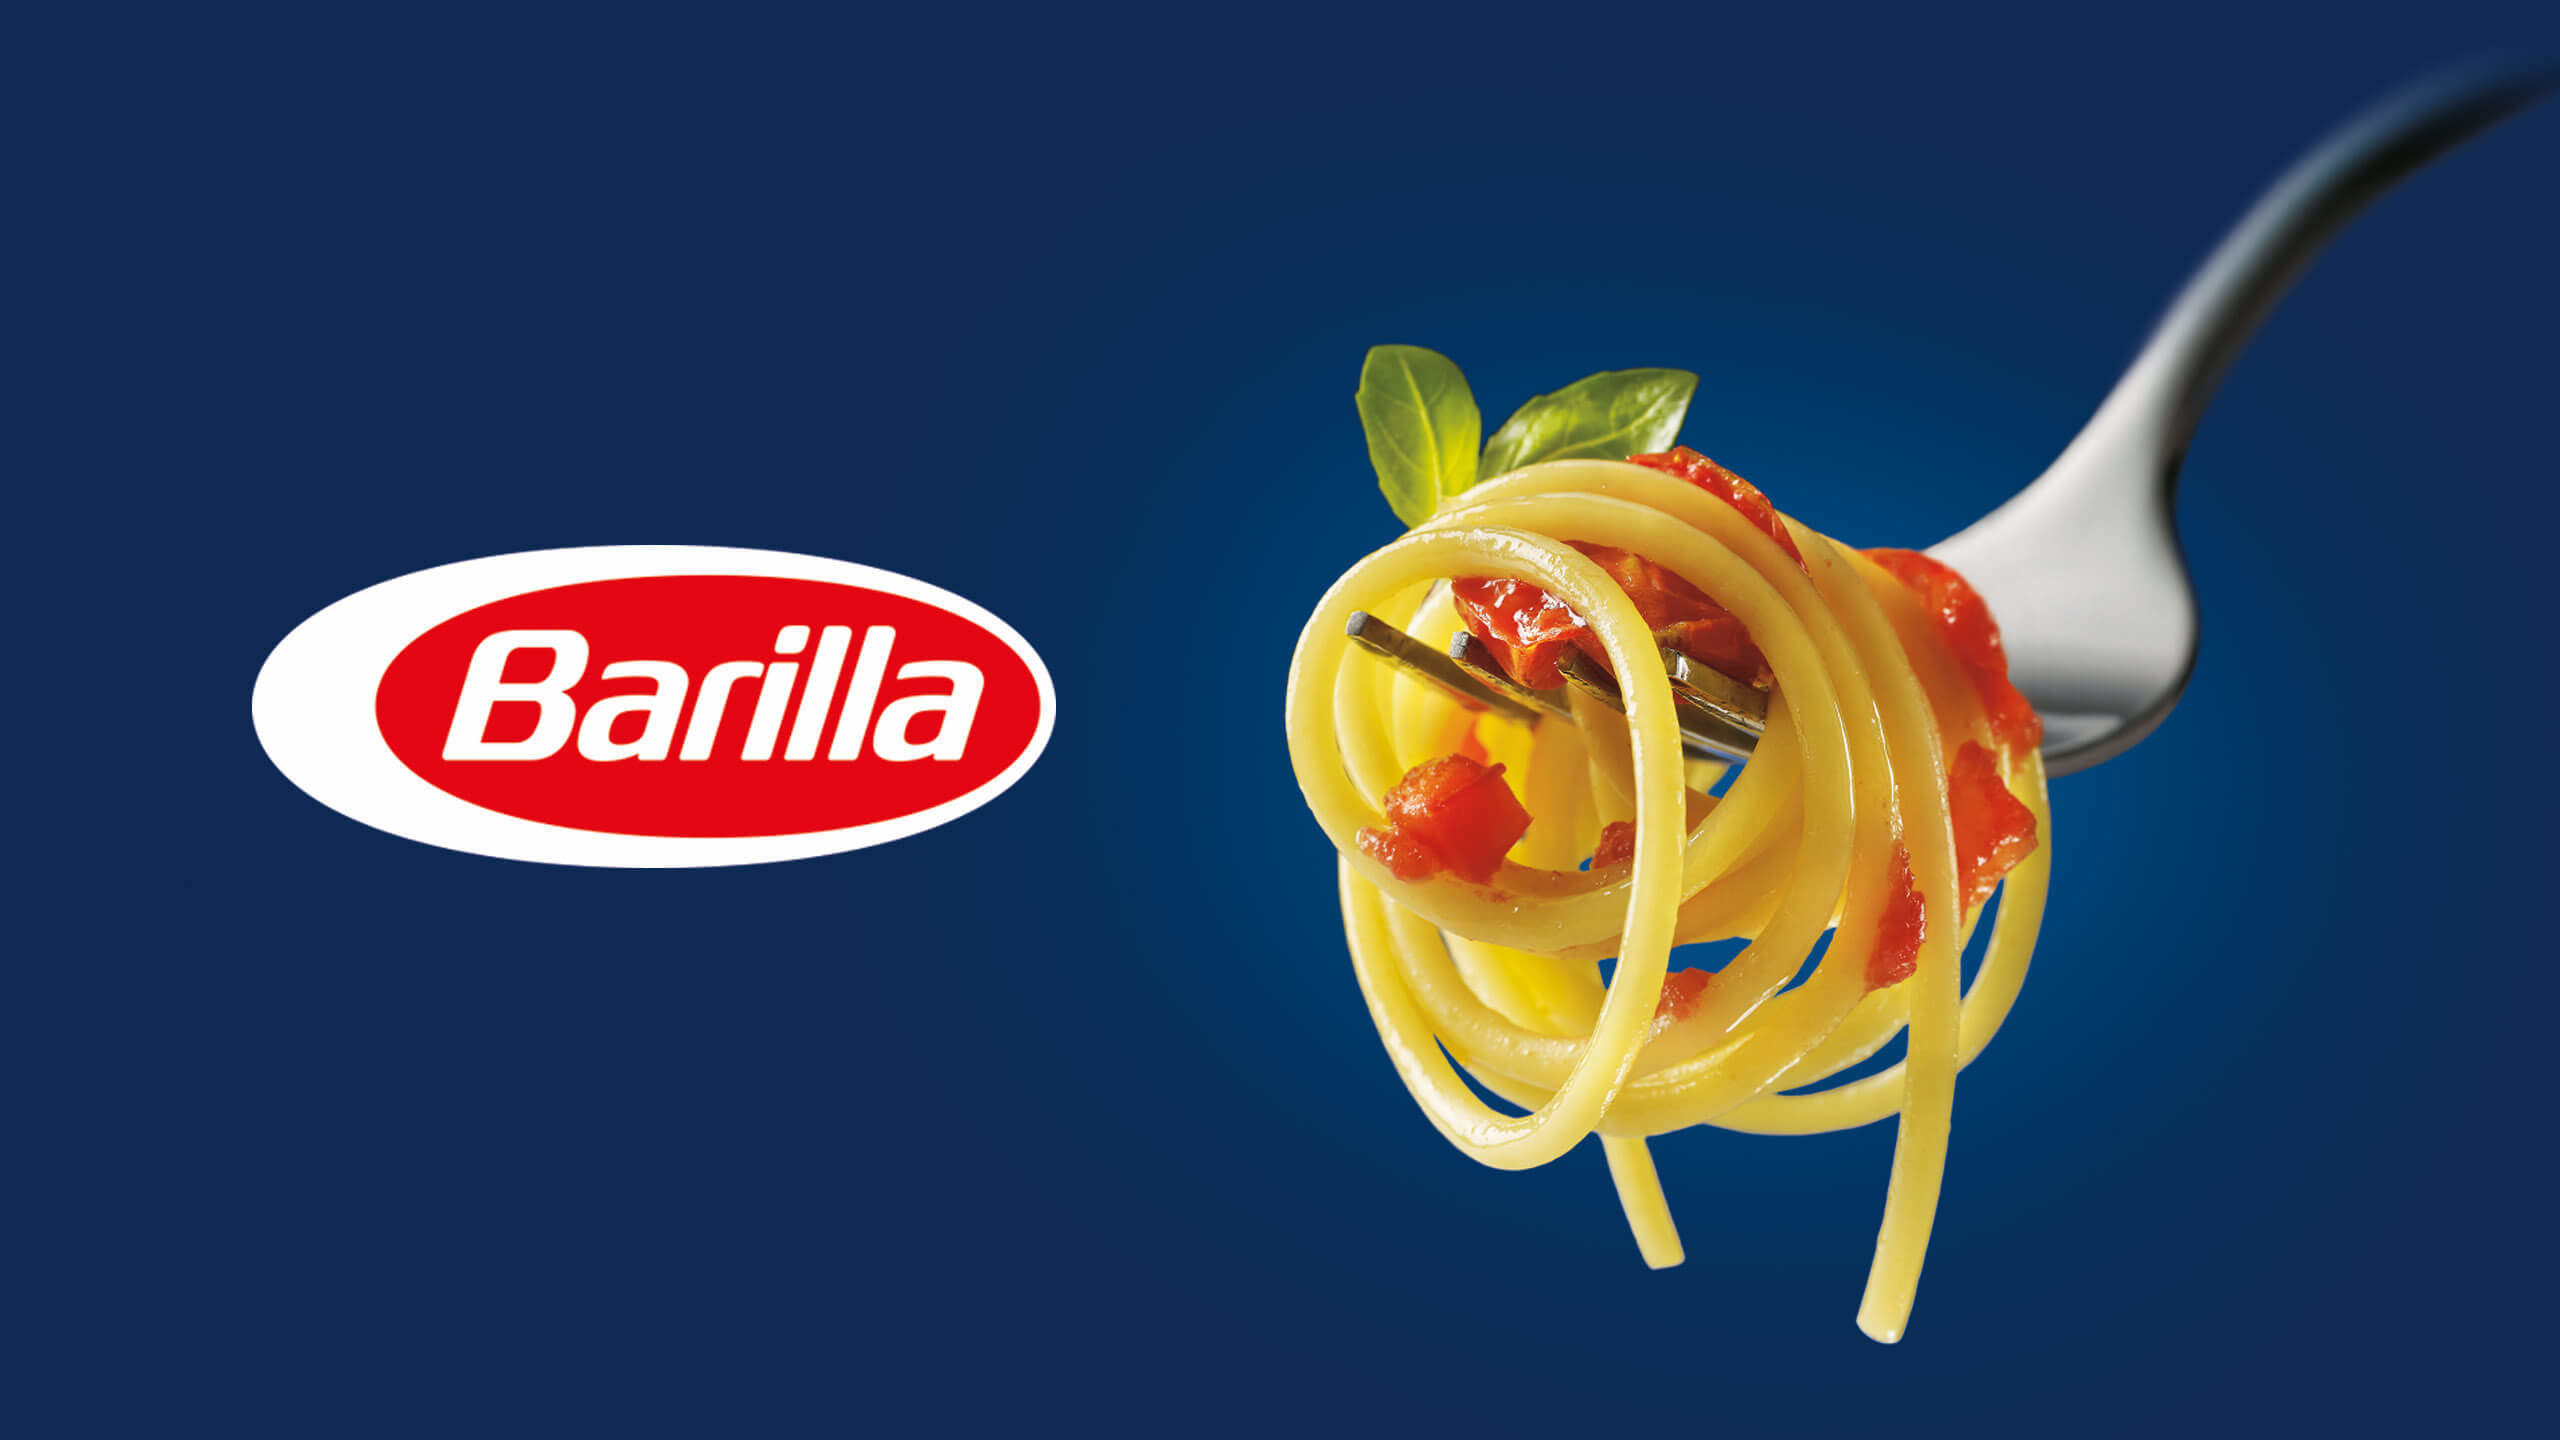 barilla case study principal challenges and School improvement efforts and challenges: a case study of a principal utilizing information communication technology the school principal has succeeded in.